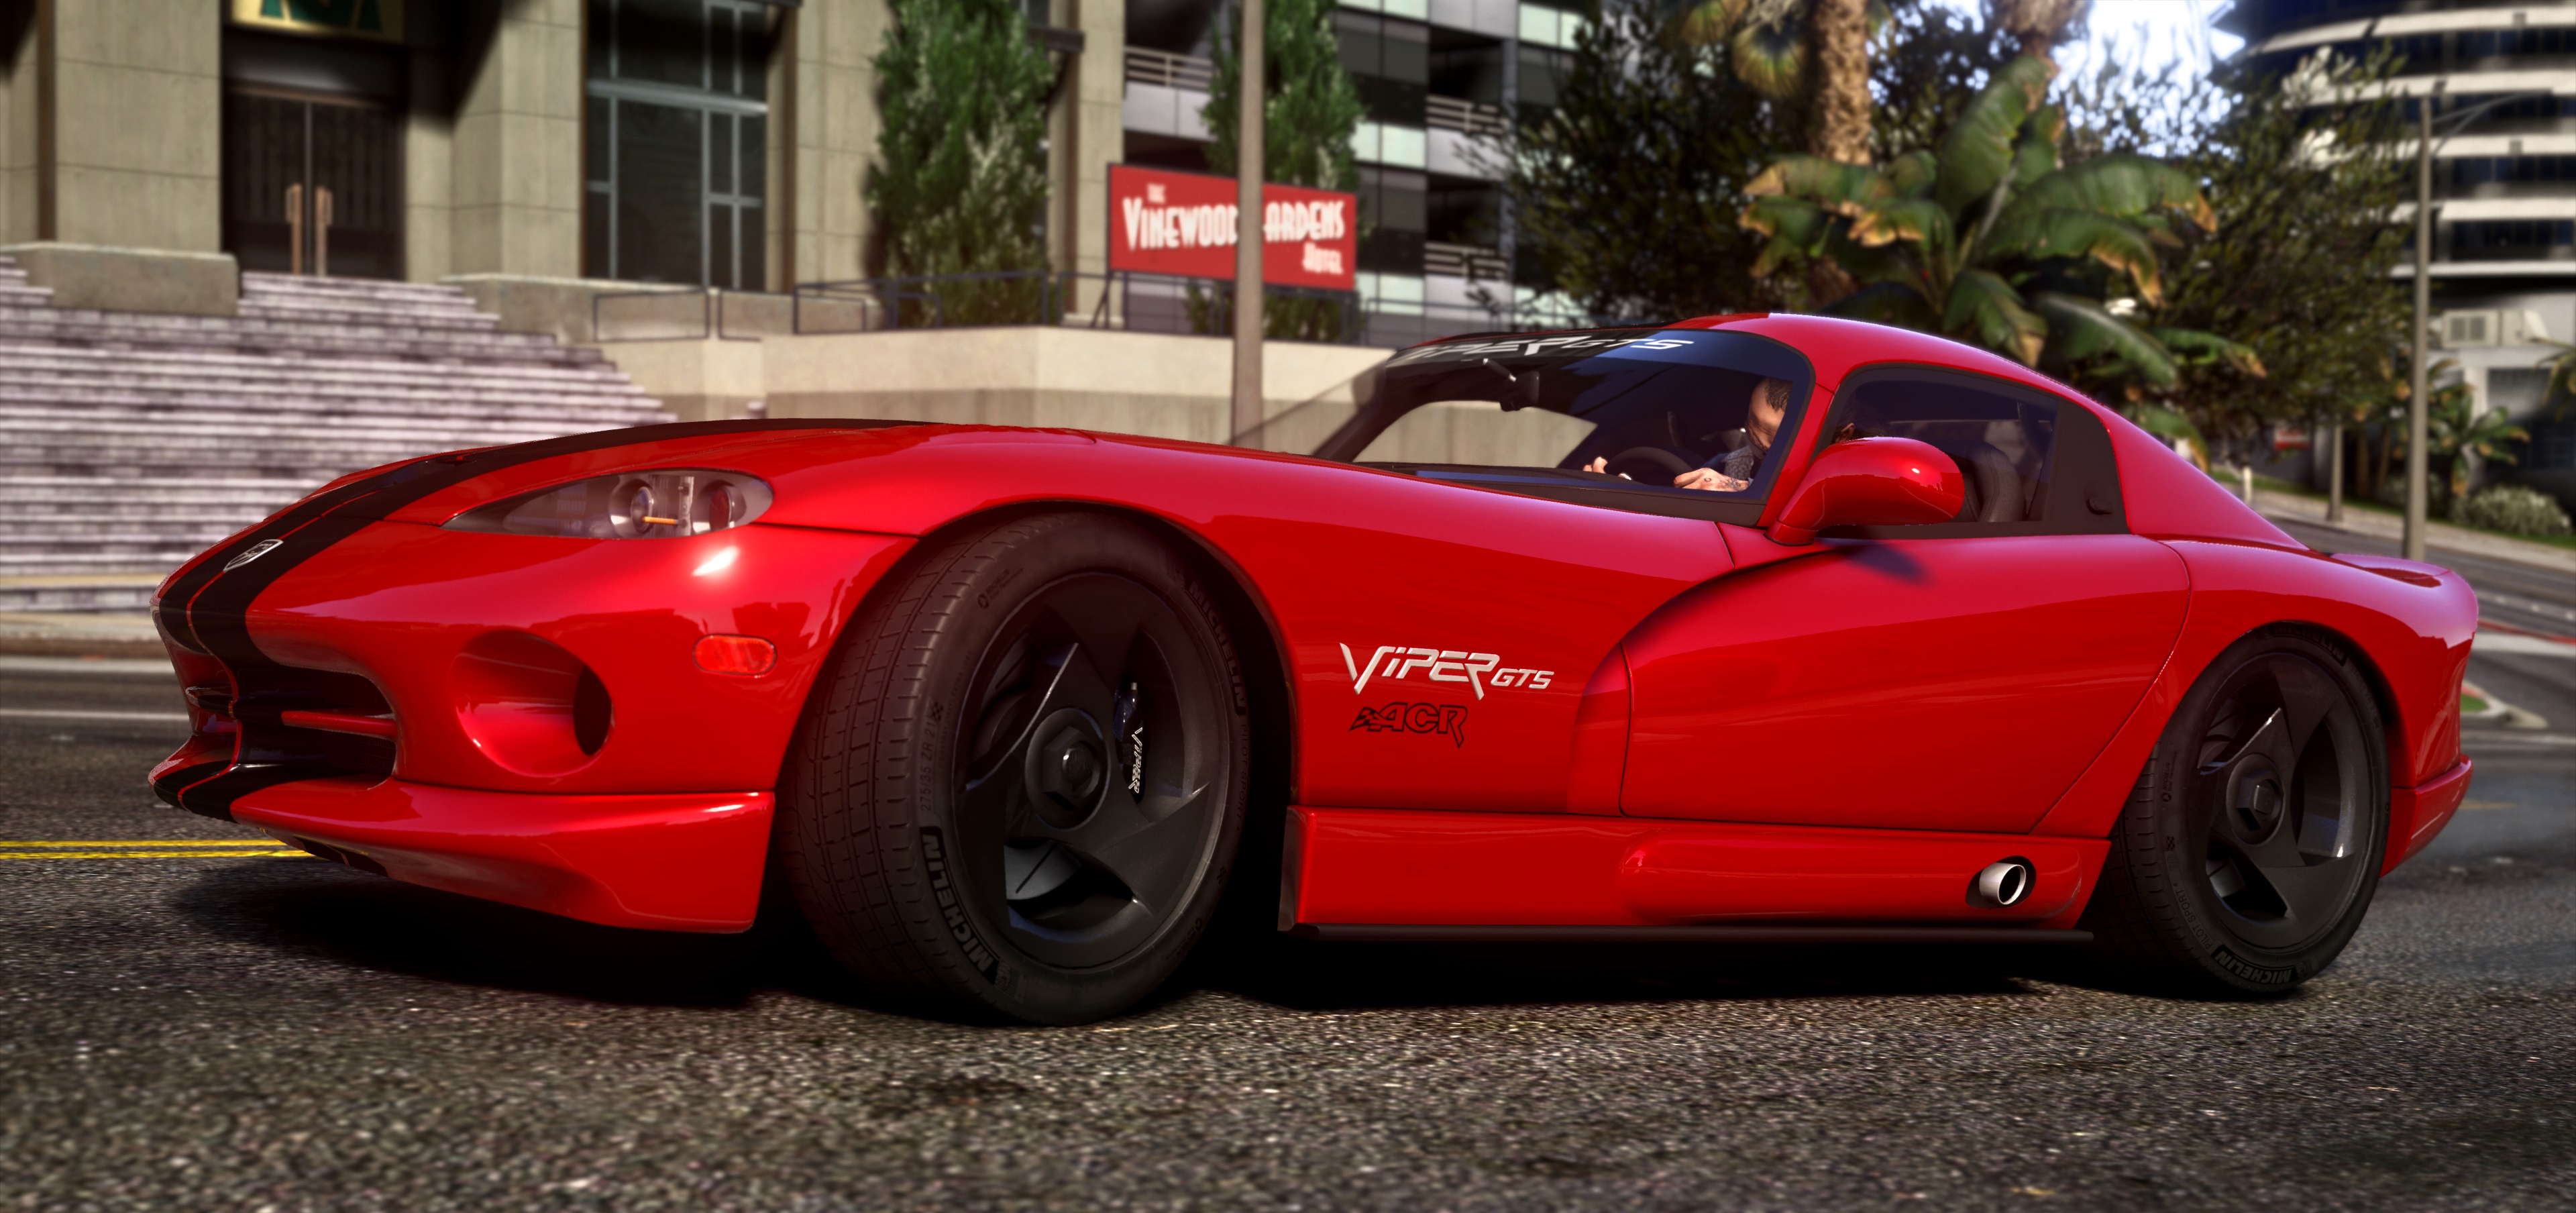 1999 Dodge Viper Gts Acr Add On Replace Tuning Template Gta5 Mods Com